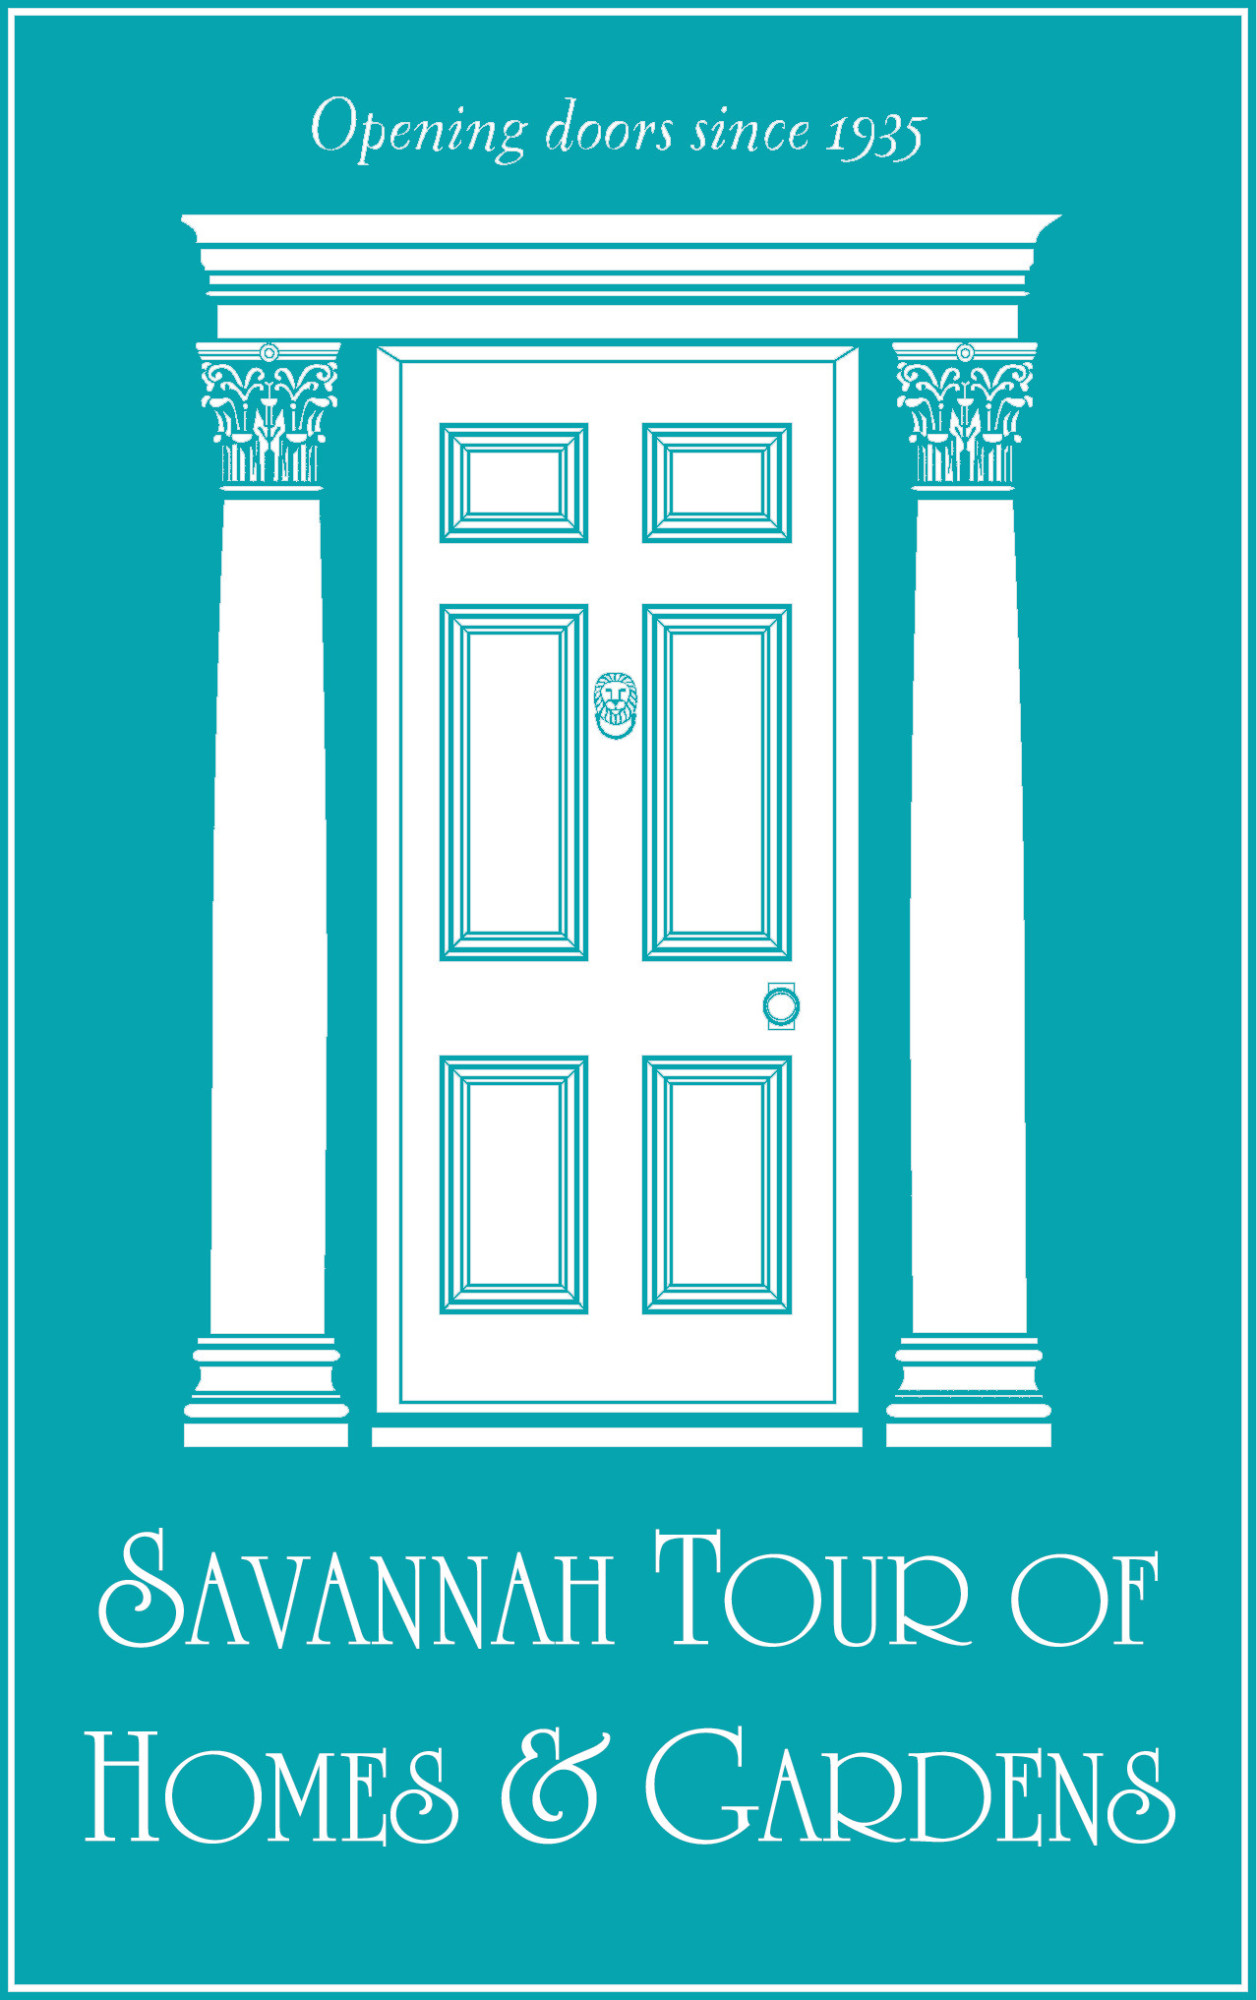 The 82nd Annual Savannah Tour of Homes & Gardens